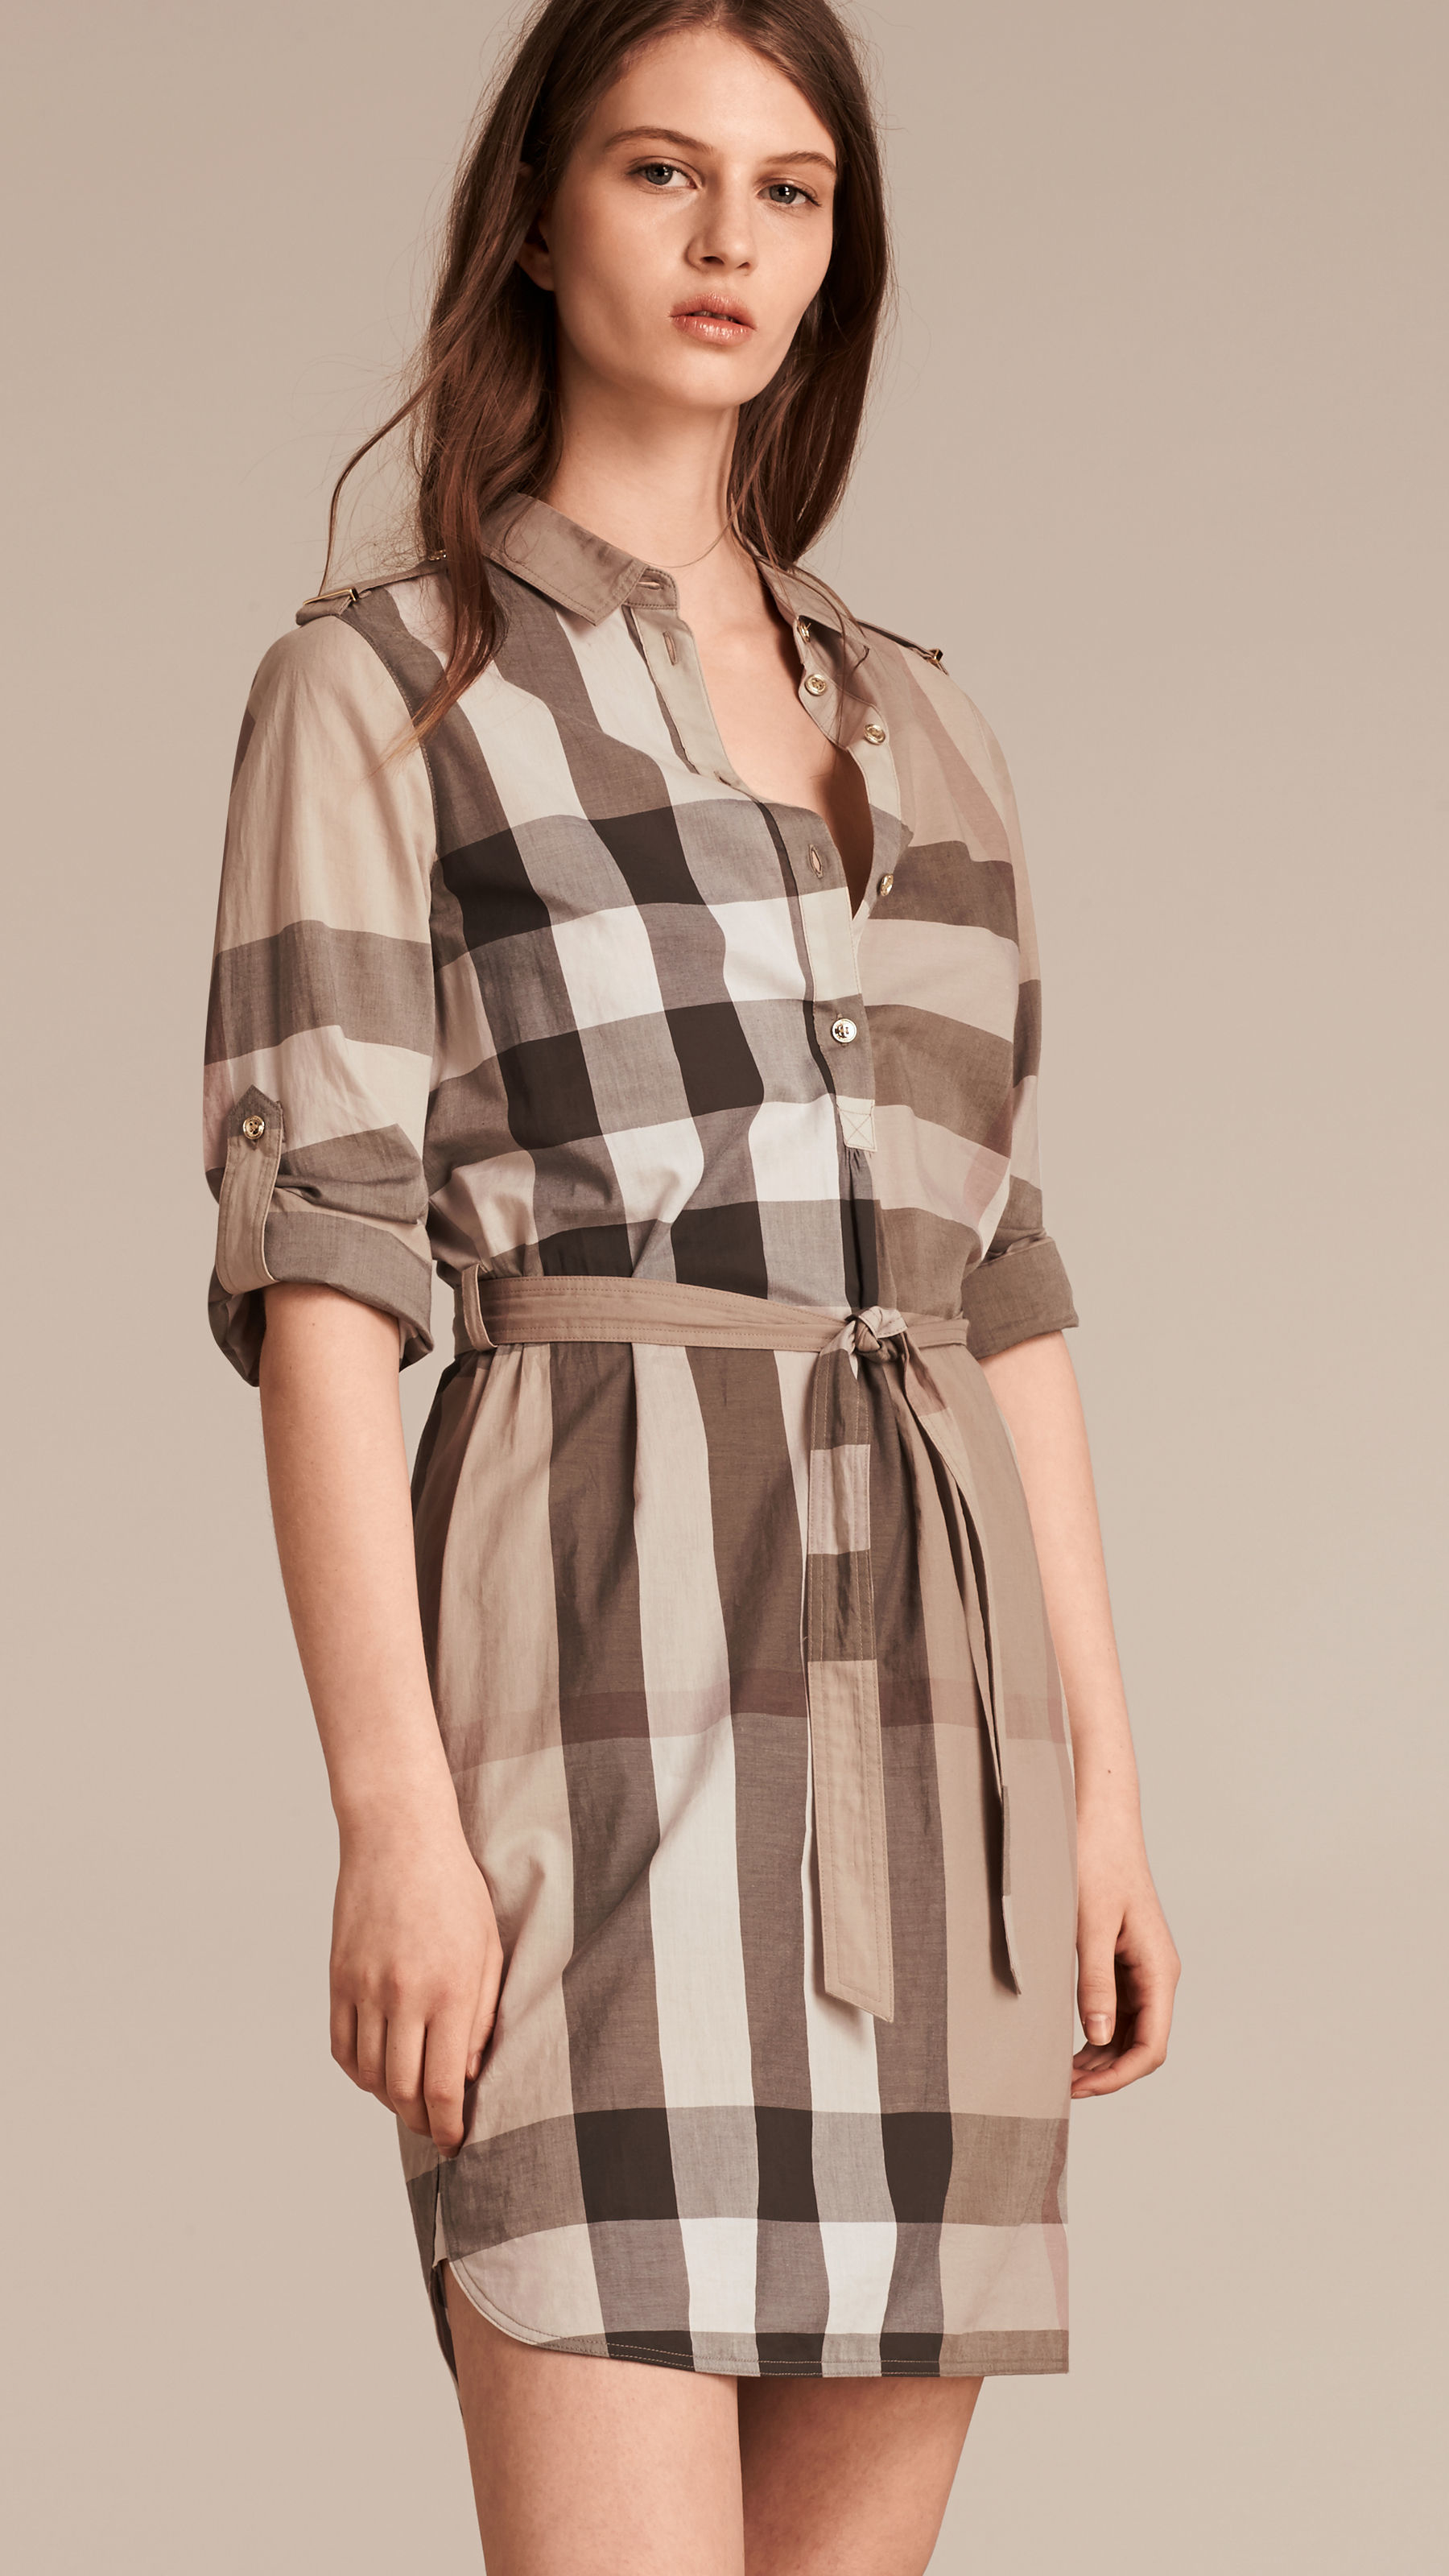 Lyst Burberry Check Cotton Shirt Dress Pale Stone In Natural